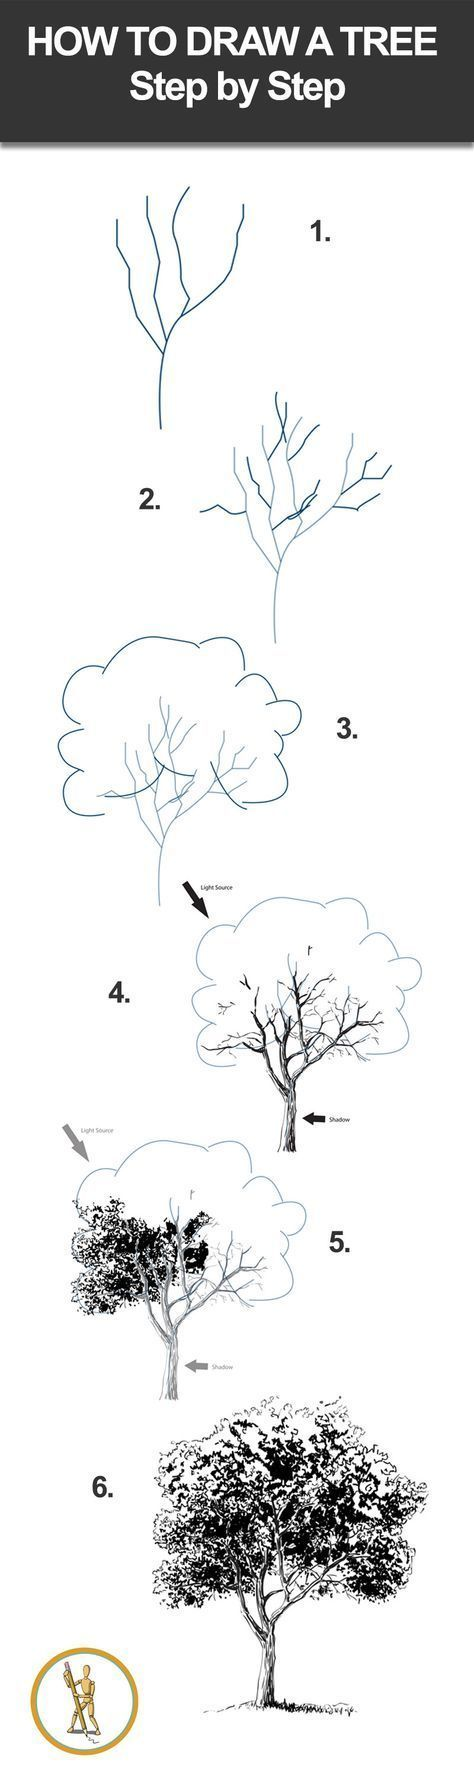 How to draw a tree step by step. #drawinglessons – – # drawing